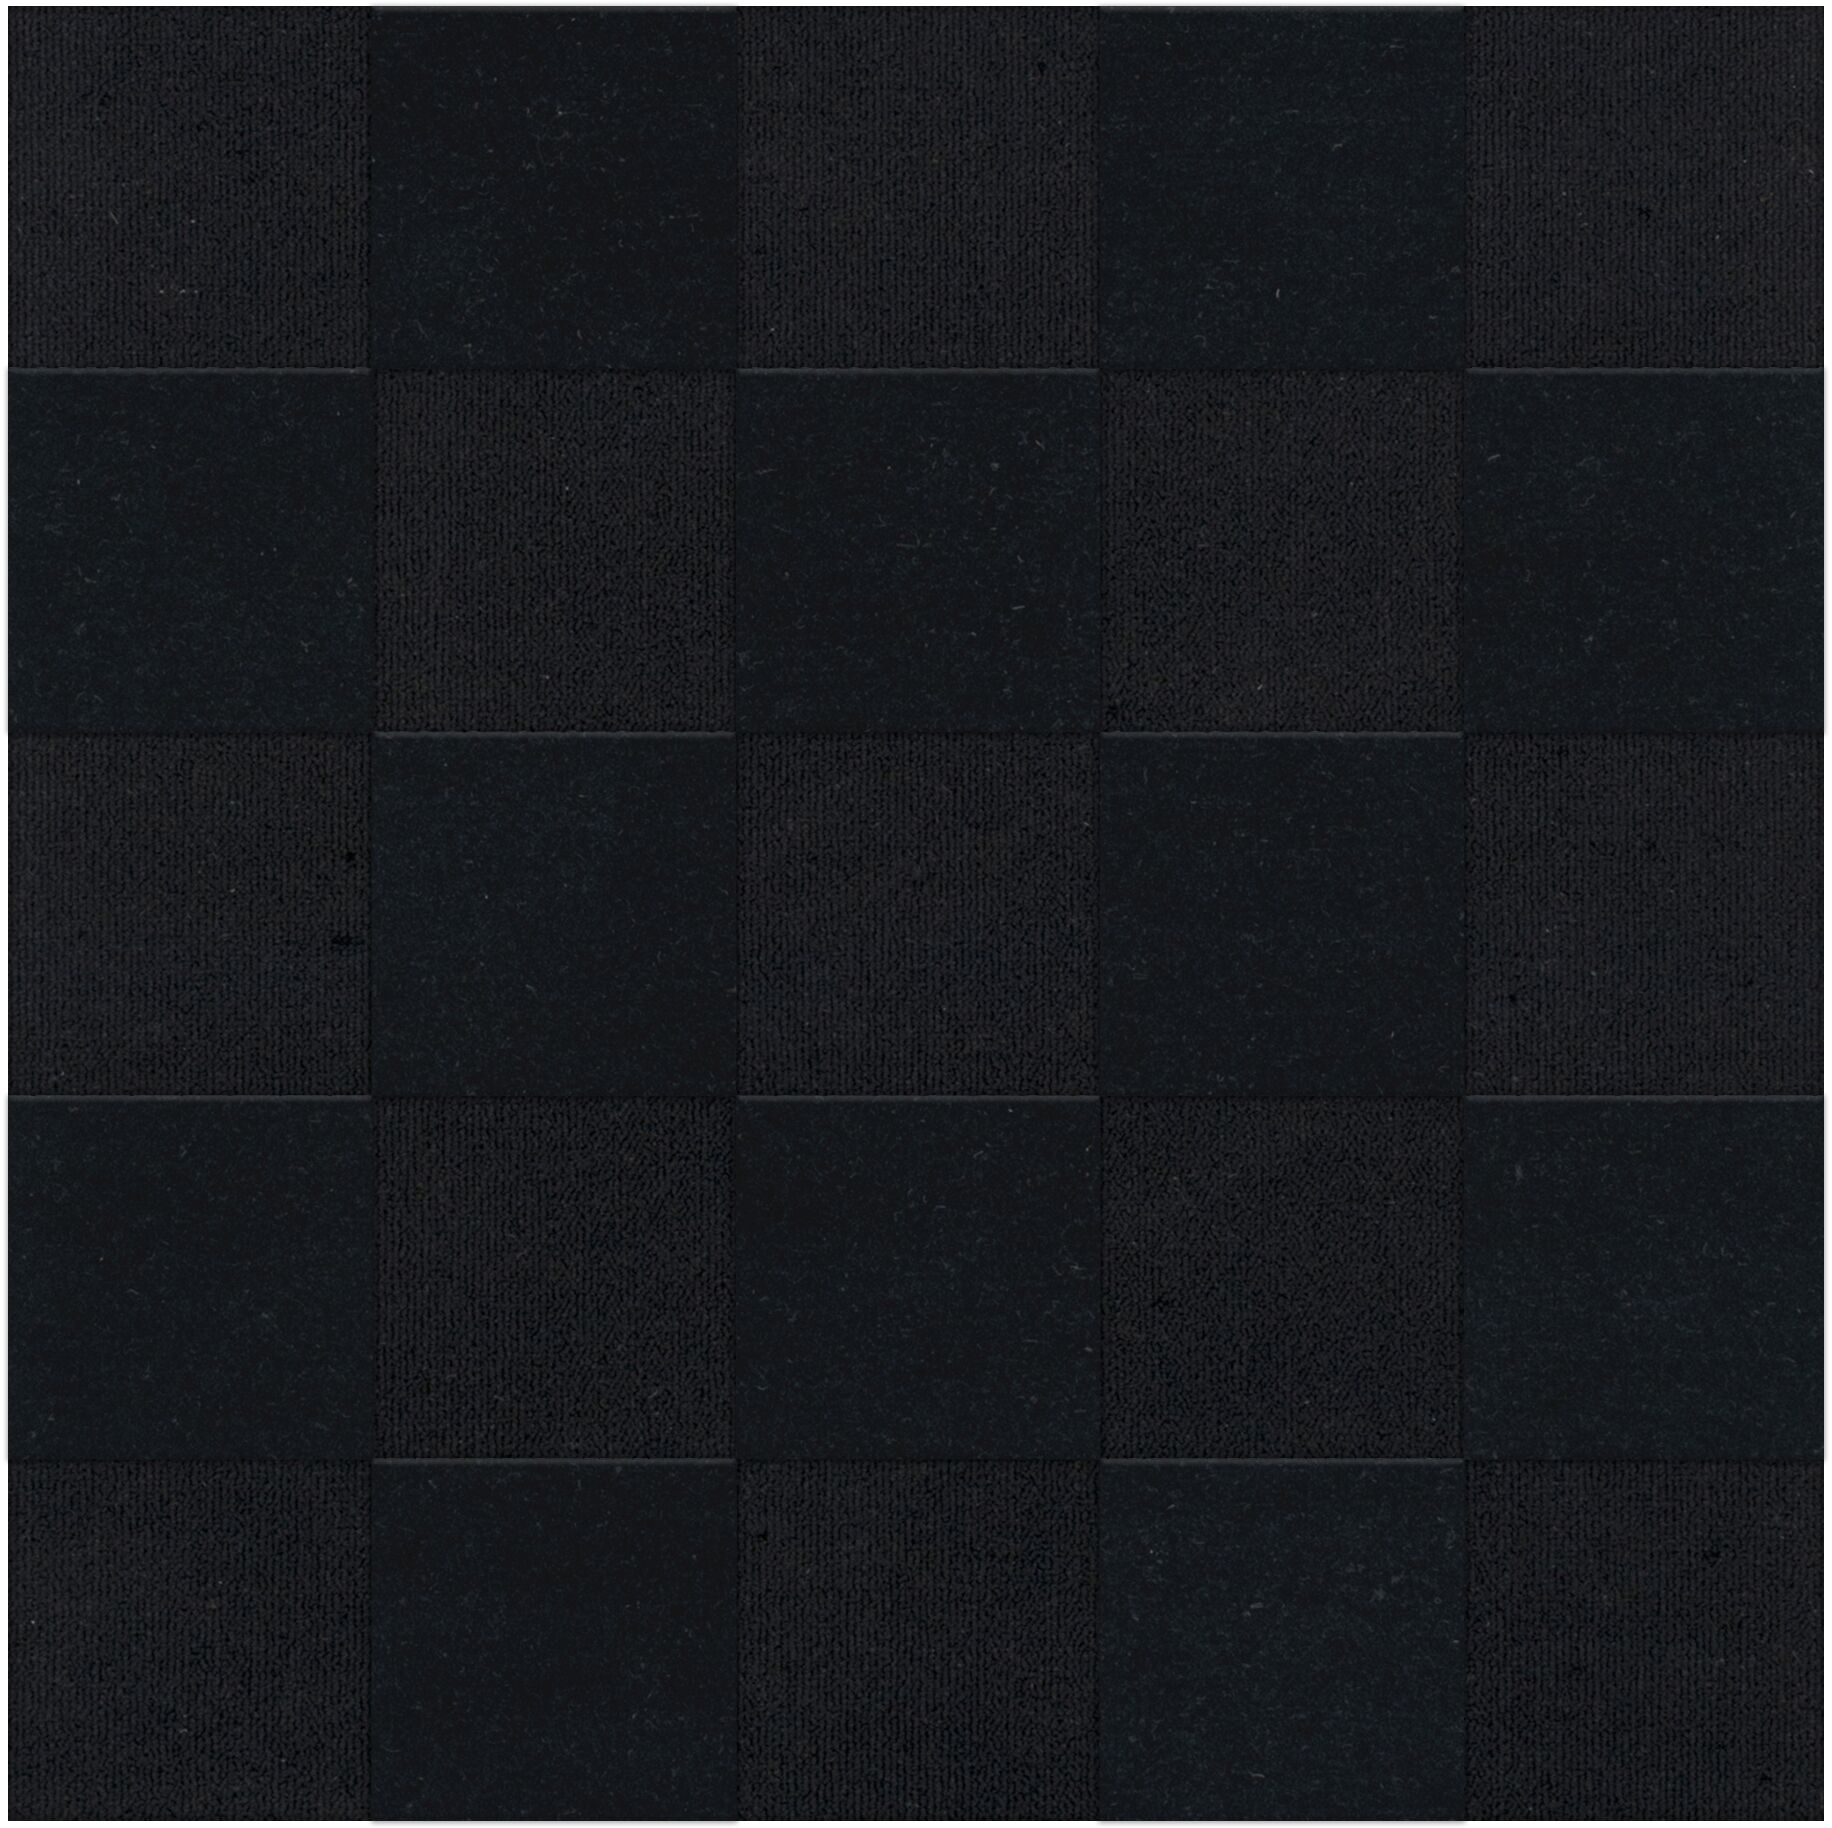 Dover Tufted Wool Black Area Rug Rug Size: Square 10'